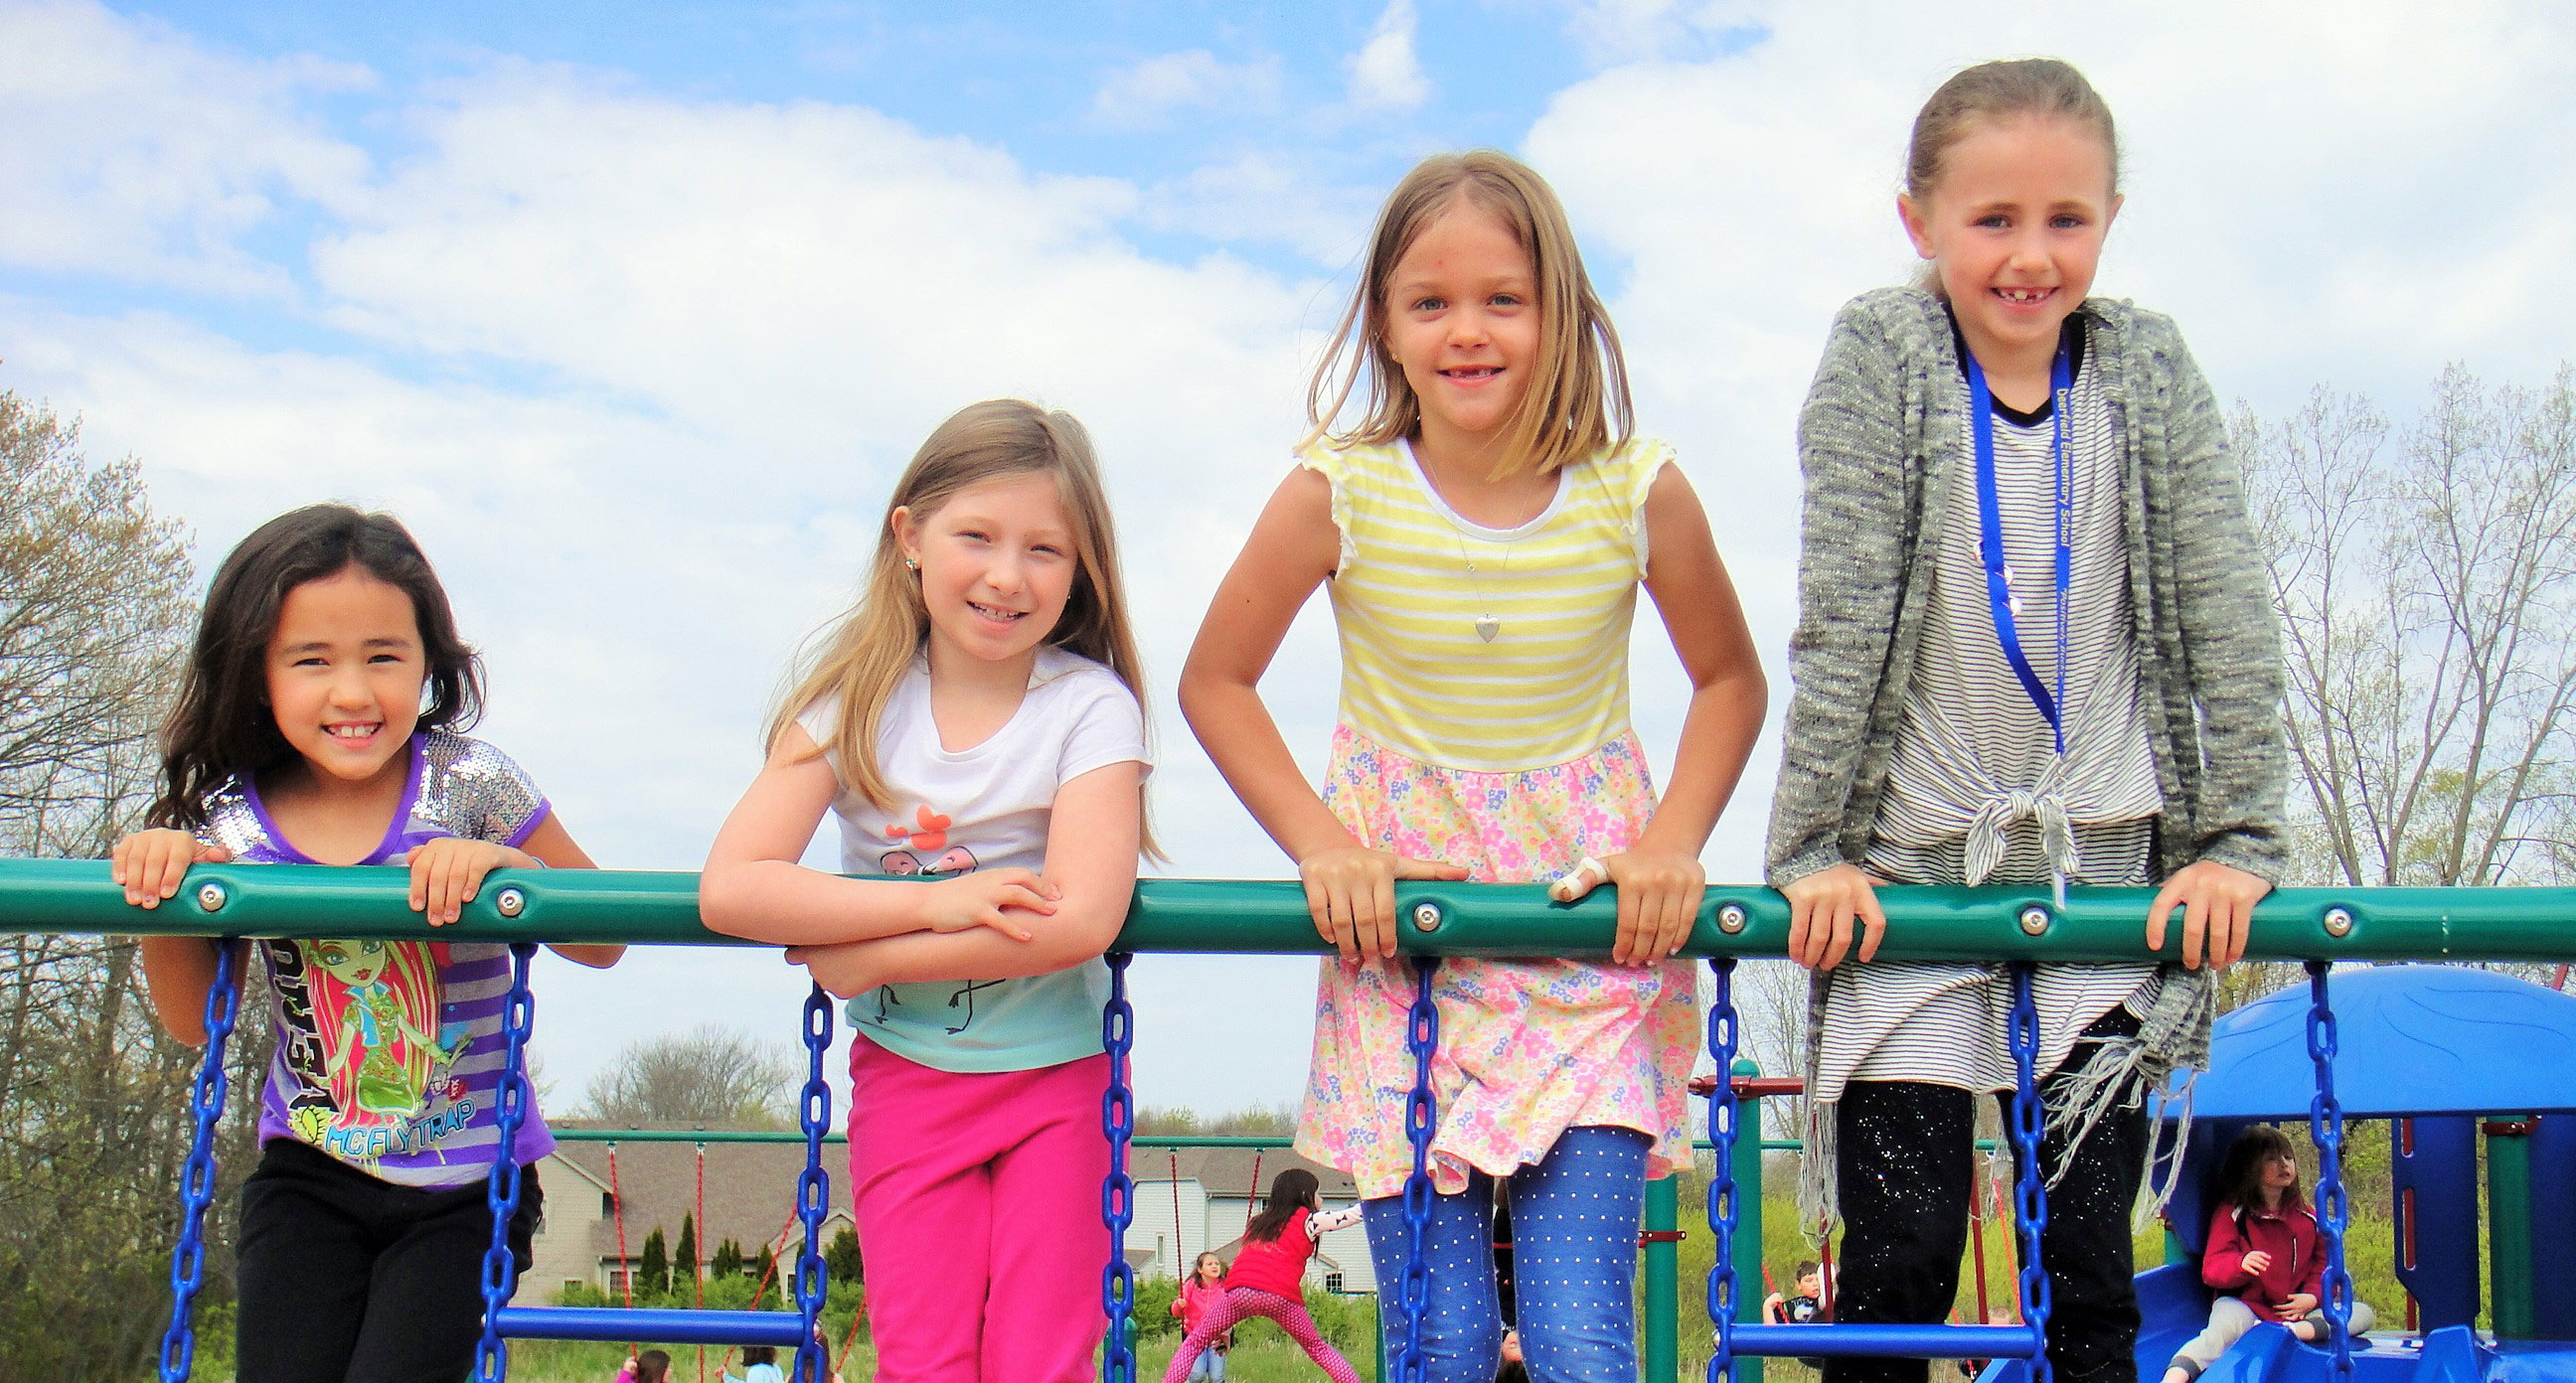 four girls playing on playground